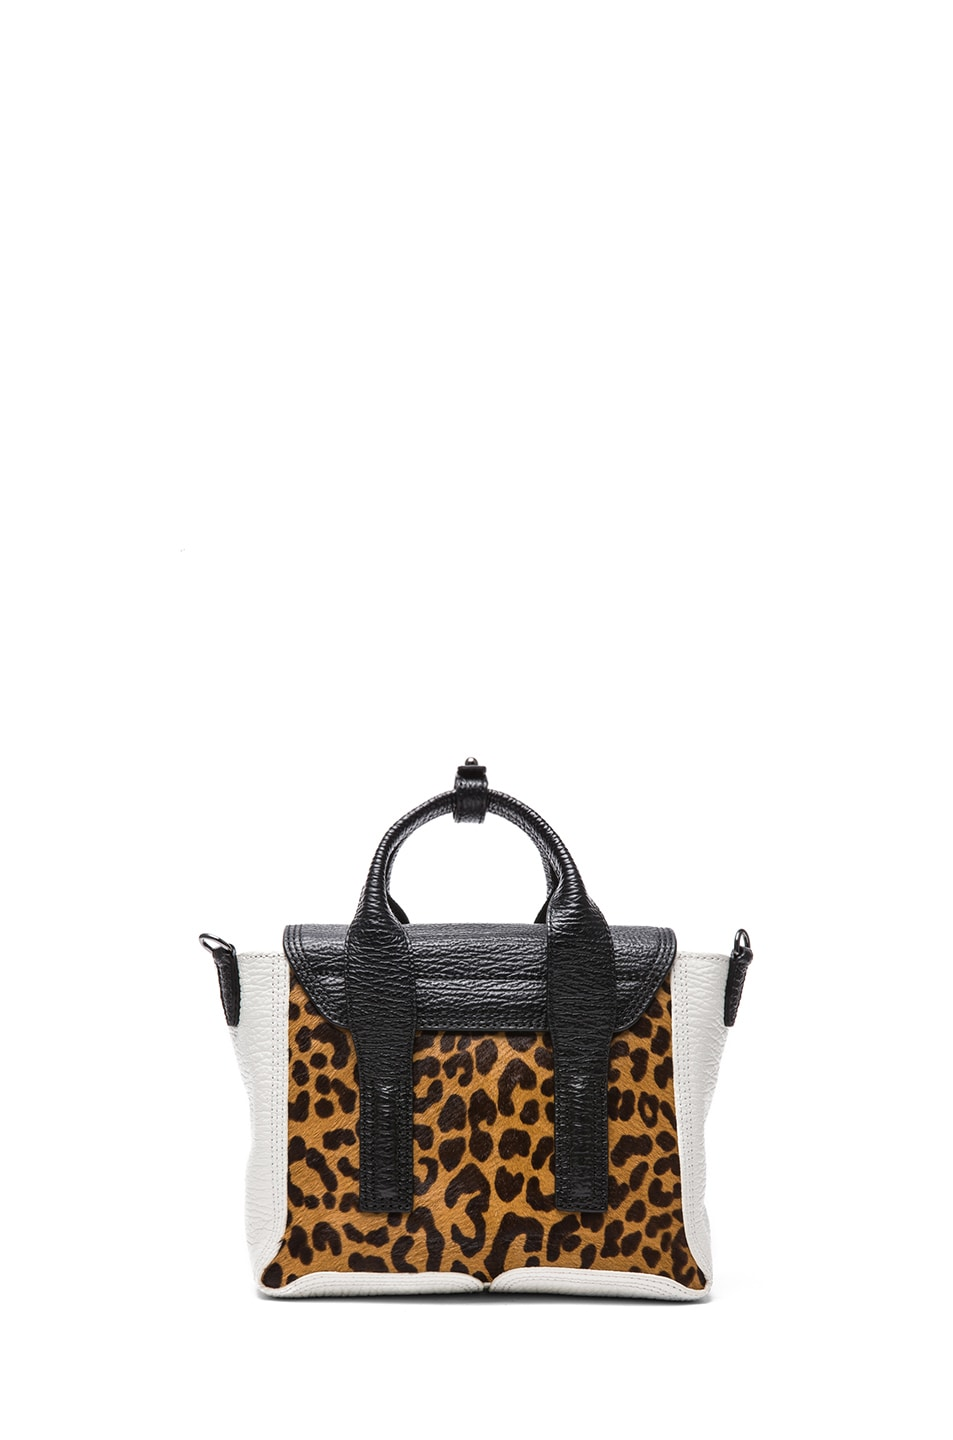 Image 2 of 3.1 phillip lim Mini Pashli Satchel in Natural Leopard